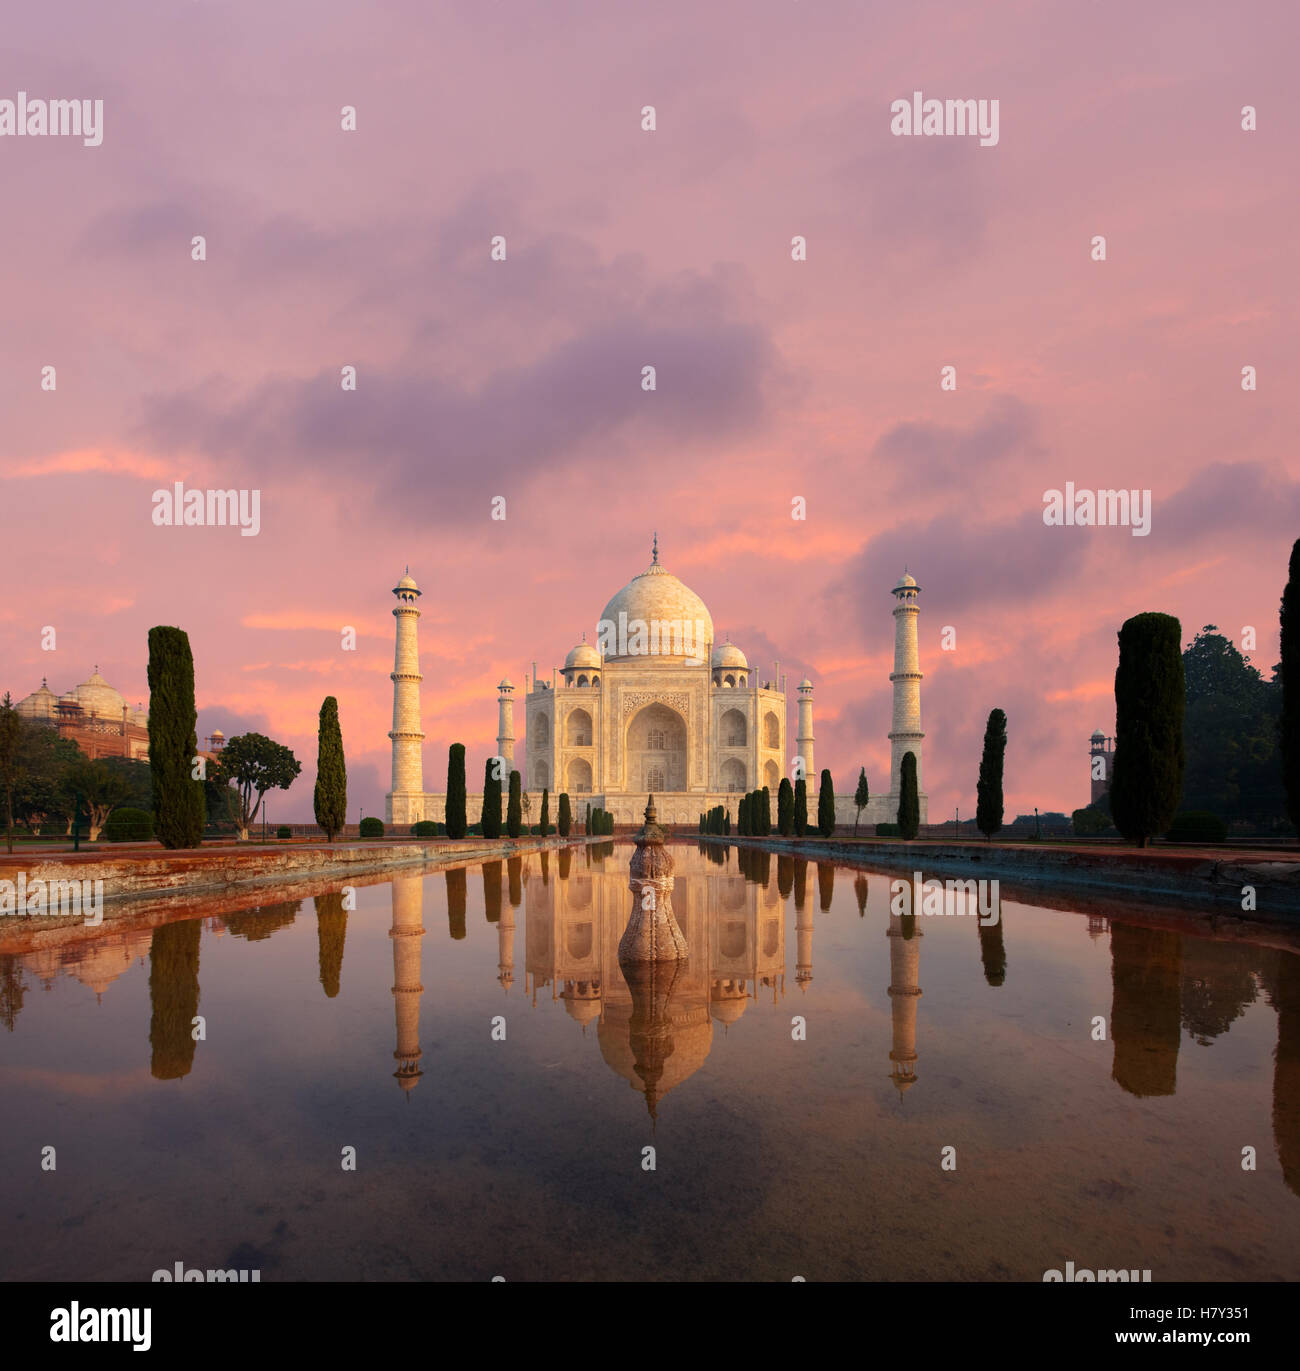 Nobody present as Taj Mahal glows beautifully at sunset reflected in front garden water fountain pool of water under - Stock Image